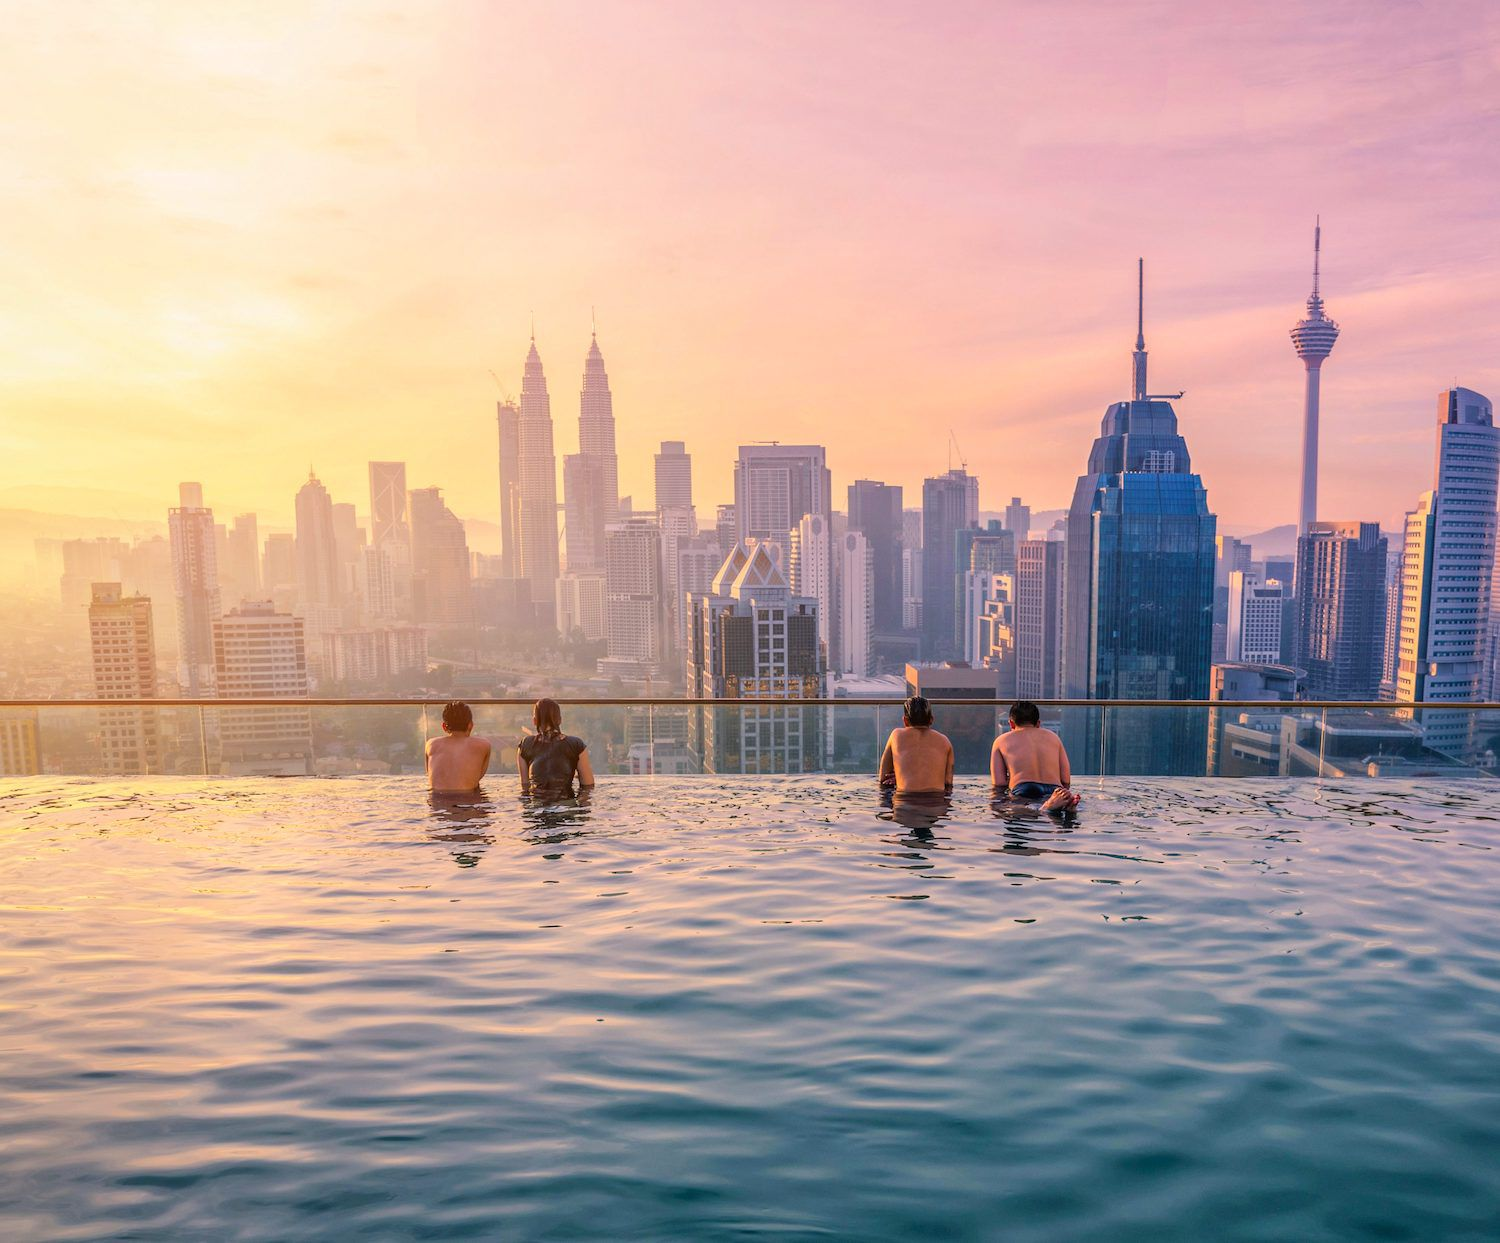 Kuala Lumpur - Best Places To Visit in Malaysia in 3 Days